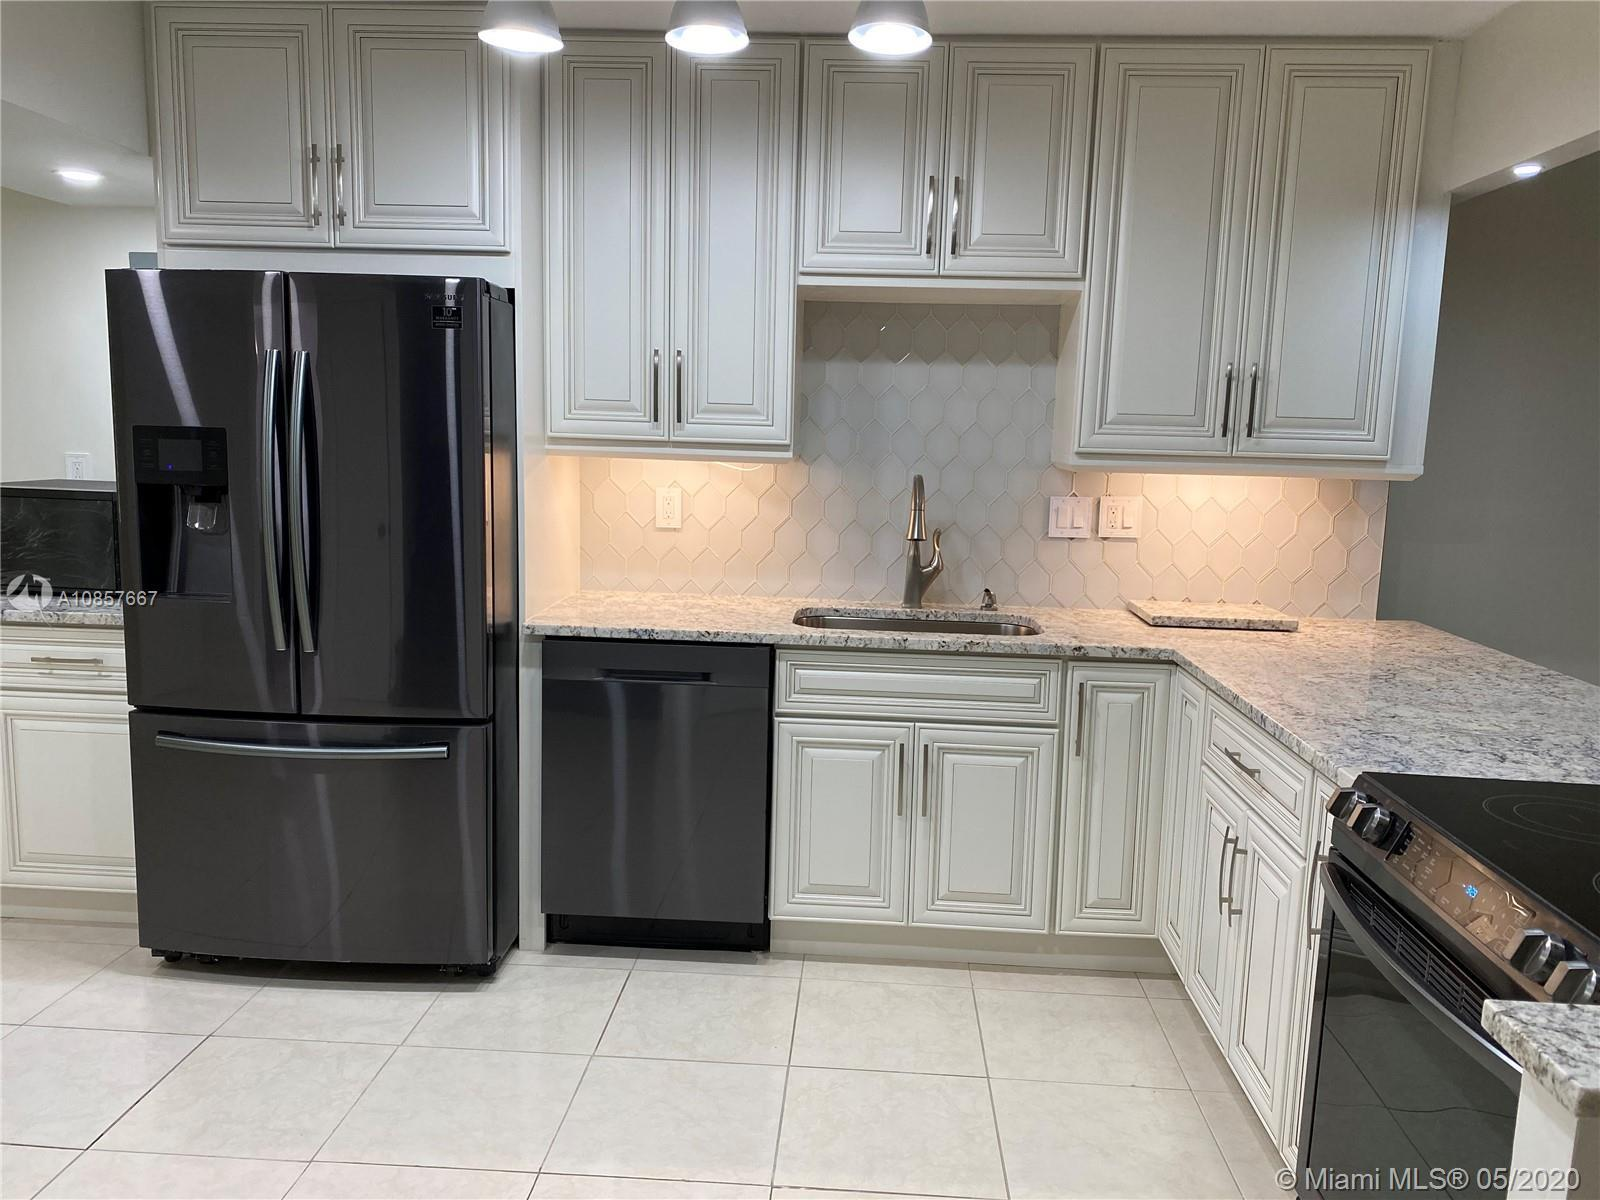 Beautifully renovated 3-bedroom, 2.5-bathroom townhouse in the heart of Aventura. Brand new kitchen